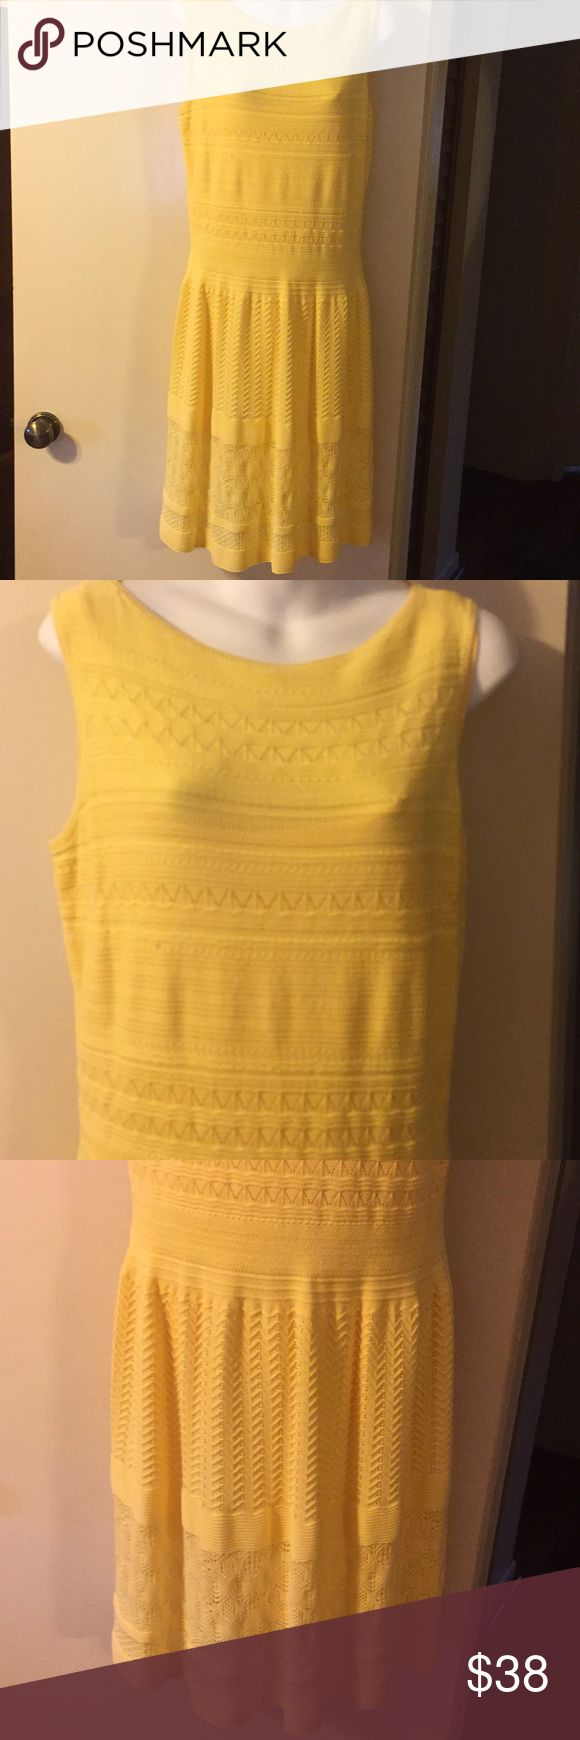 "Ralph Lauren dress Lauren Ralph Lauren NWOT Sweater Dress A line, pullover style, sleeveless, Rib Knit.  Dress has separate slip/lining (see 5th pic) 88%Cotton / 12% Nylon Bust 17"" across Waist 14"" across Hips 20 1/2"" across Length 38""      Color   SUMMER YELLOW.        Size Large Purchased at Bloomingdales for a wedding but never wore it. Always stored in original Bloomie Bag in closet. Lauren Ralph Lauren Dresses"